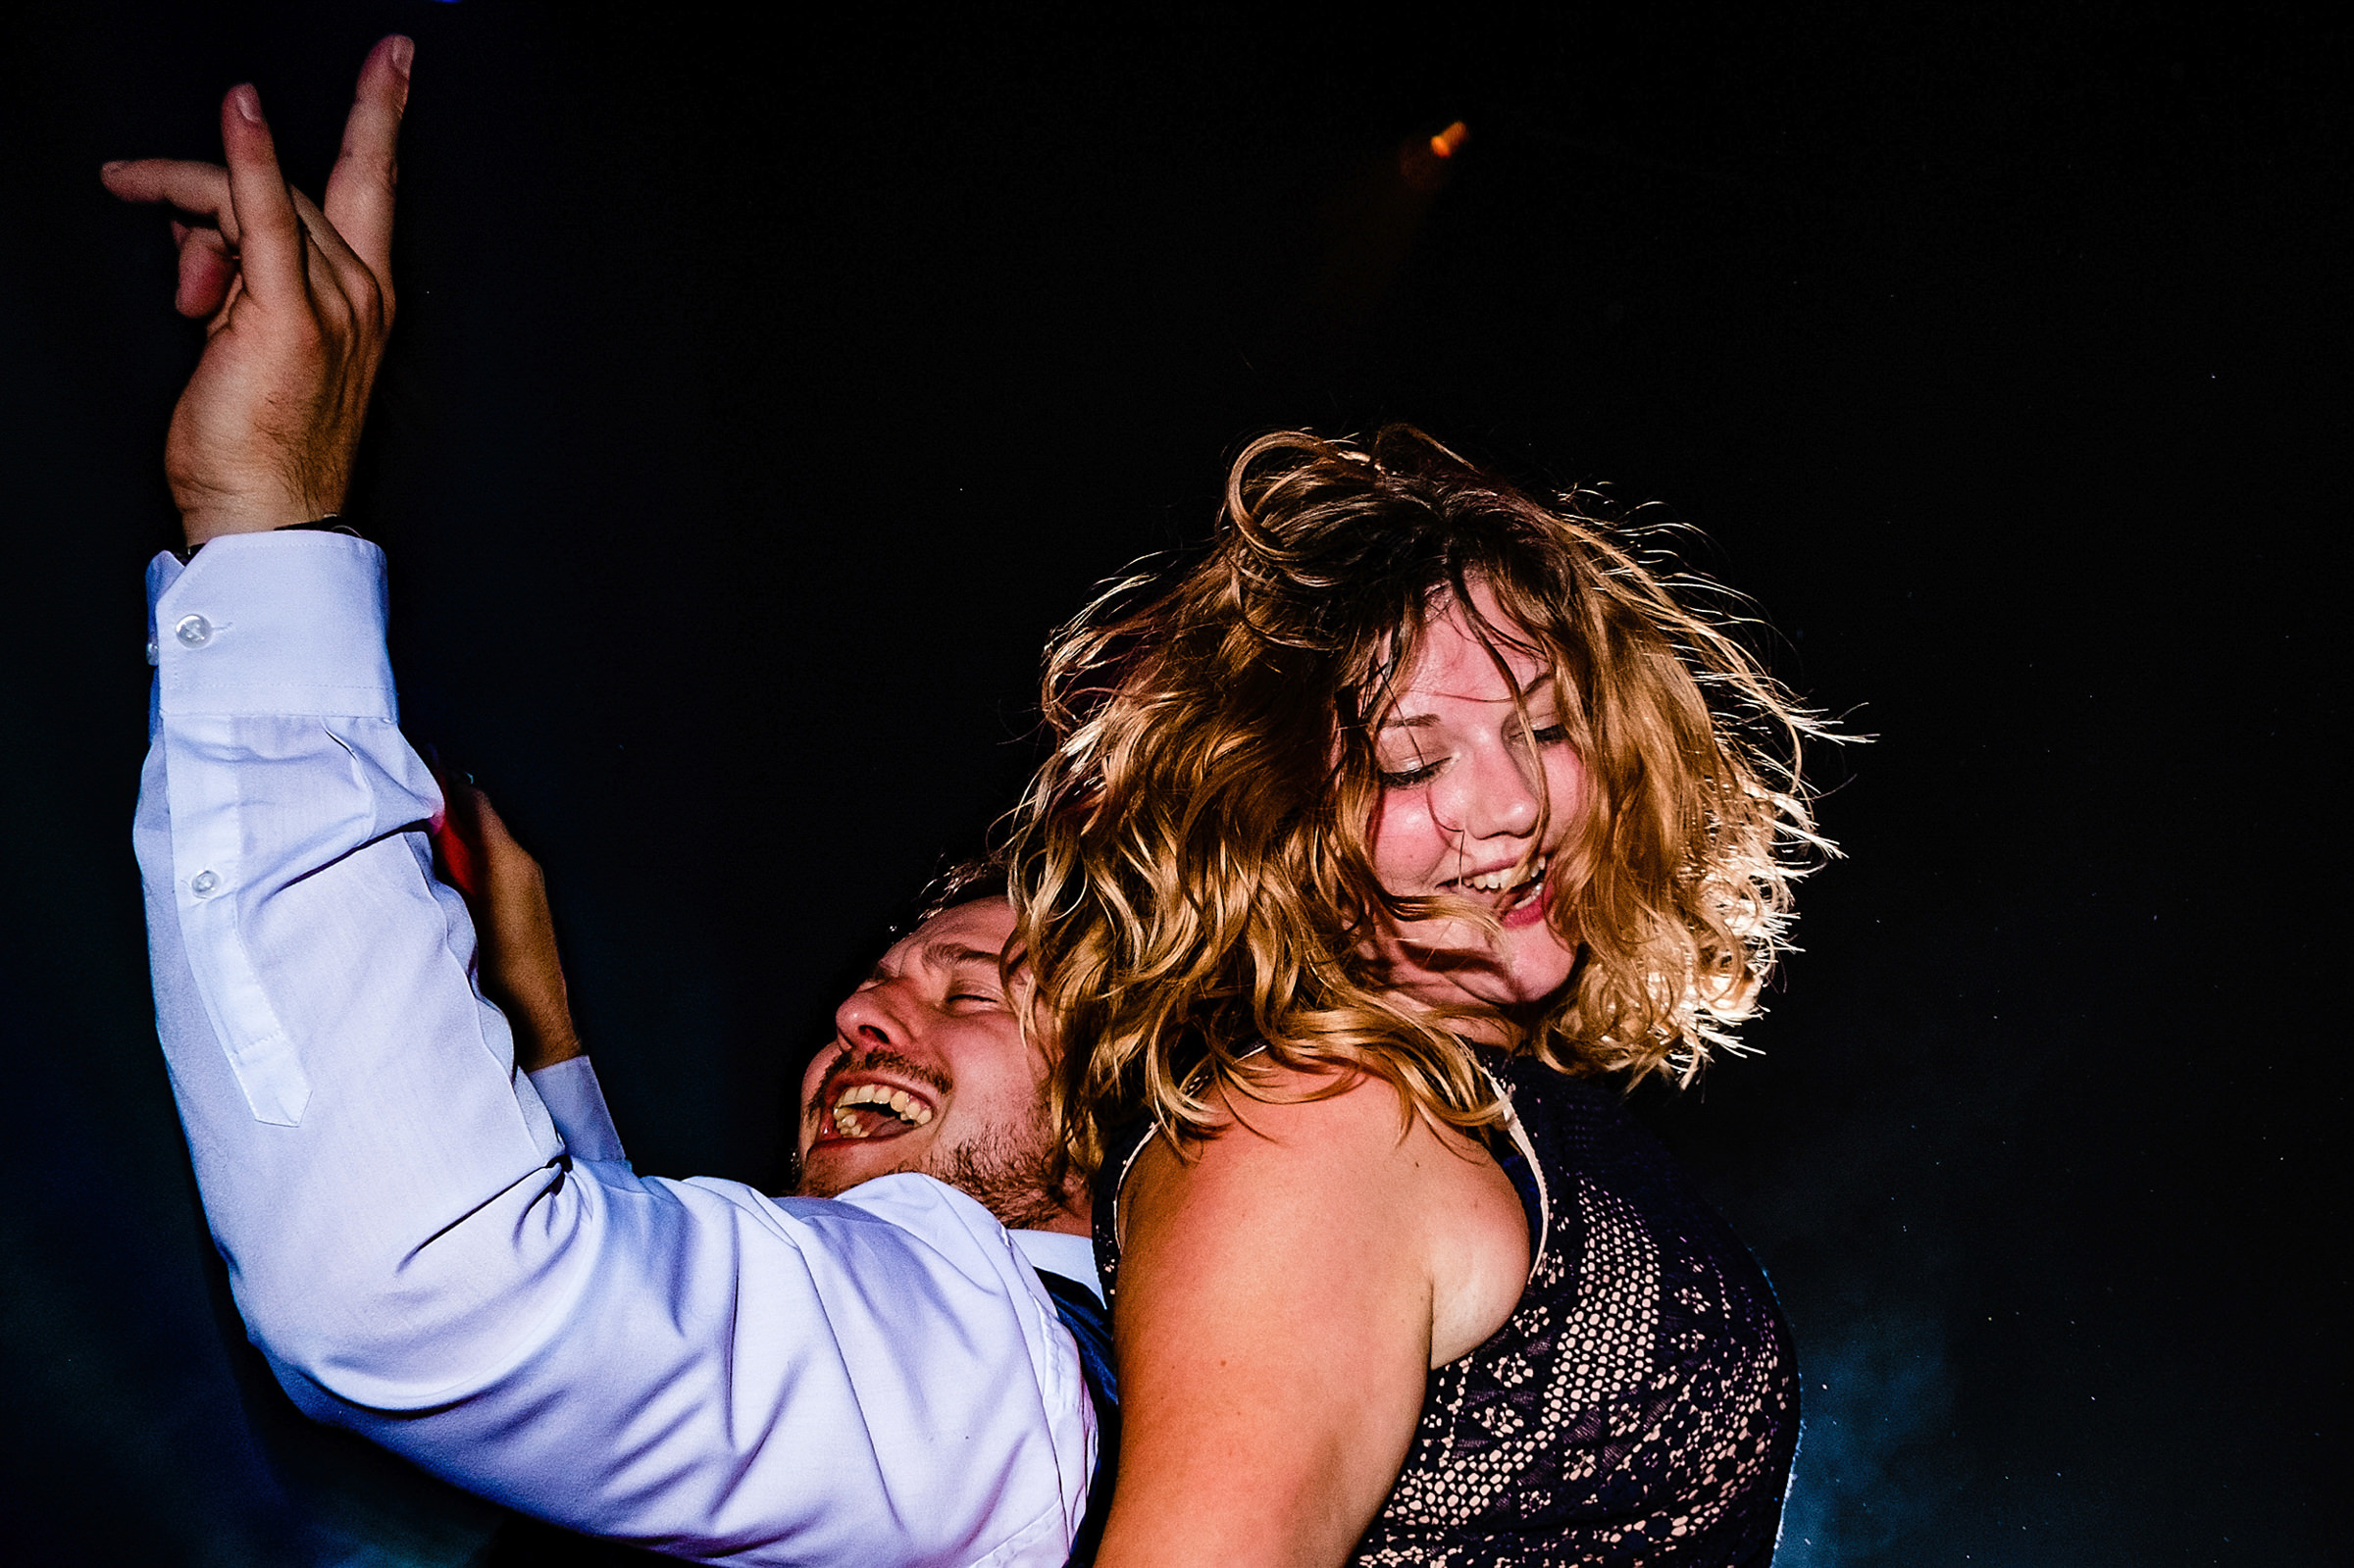 Dancing couple - photo by Emma + Rich